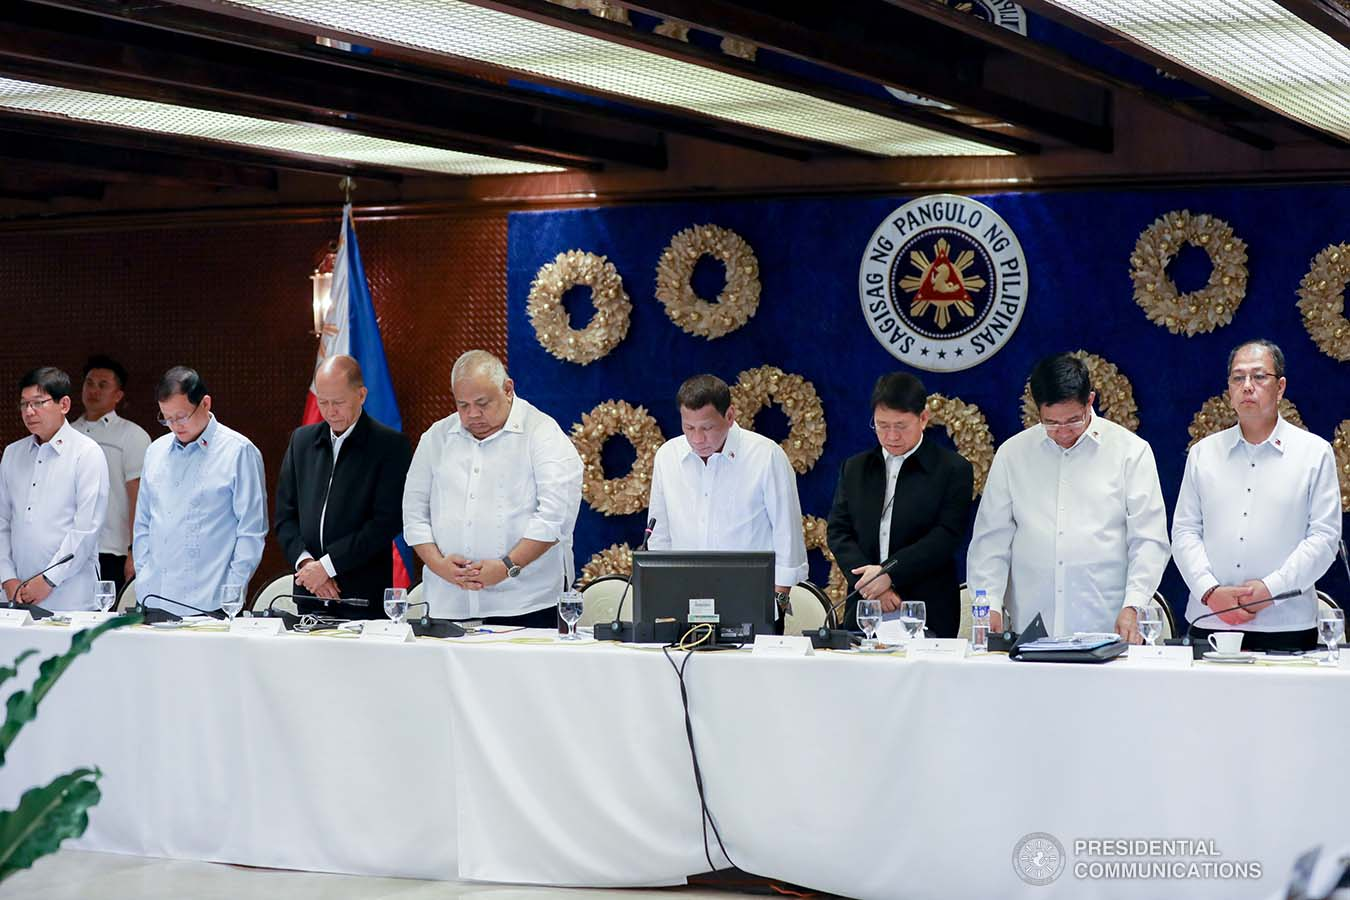 President Rodrigo Roa Duterte bows his head in prayer prior to the start of the joint Armed Forces of the Philippines-Philippine National Police (AFP-PNP) Command Conference at the Malacañan Palace on December 9, 2019. KARL NORMAN ALONZO/PRESIDENTIAL